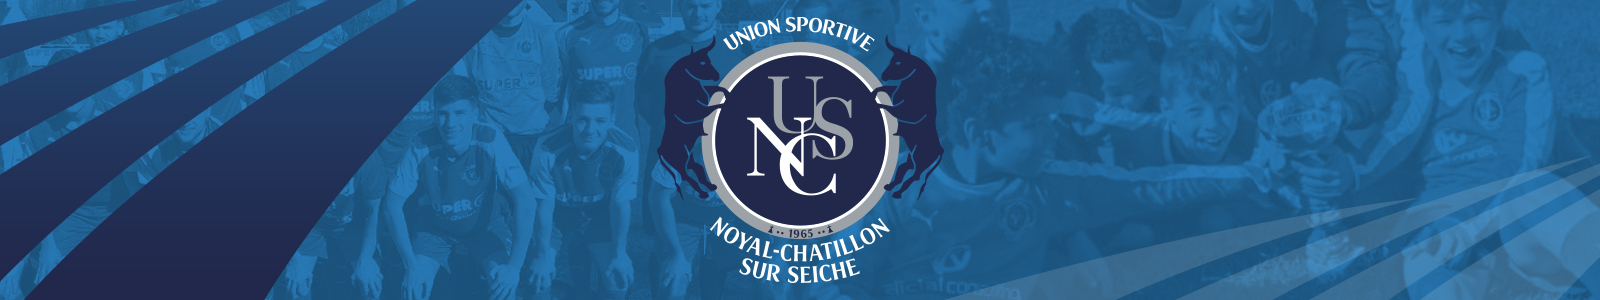 US NOYAL-CHATILLON FOOTBALL : site officiel du club de foot de NOYAL CHATILLON SUR SEICHE - footeo